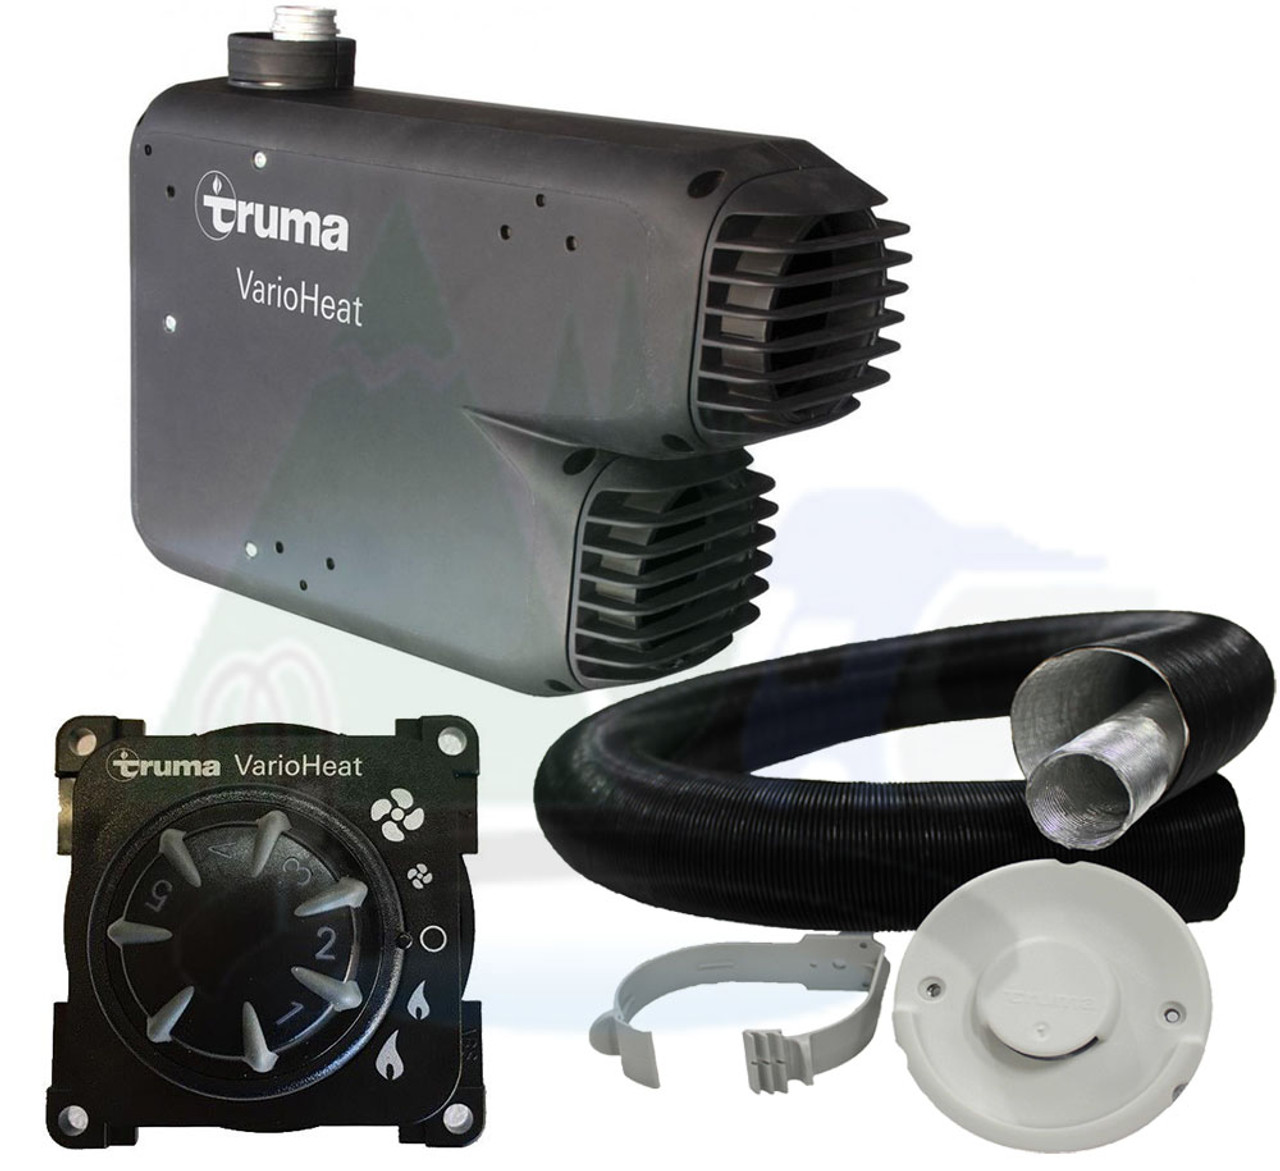 The Truma Varioheat space heater complete kit includes everything you need to get started for you campervan motorhome or caravan.